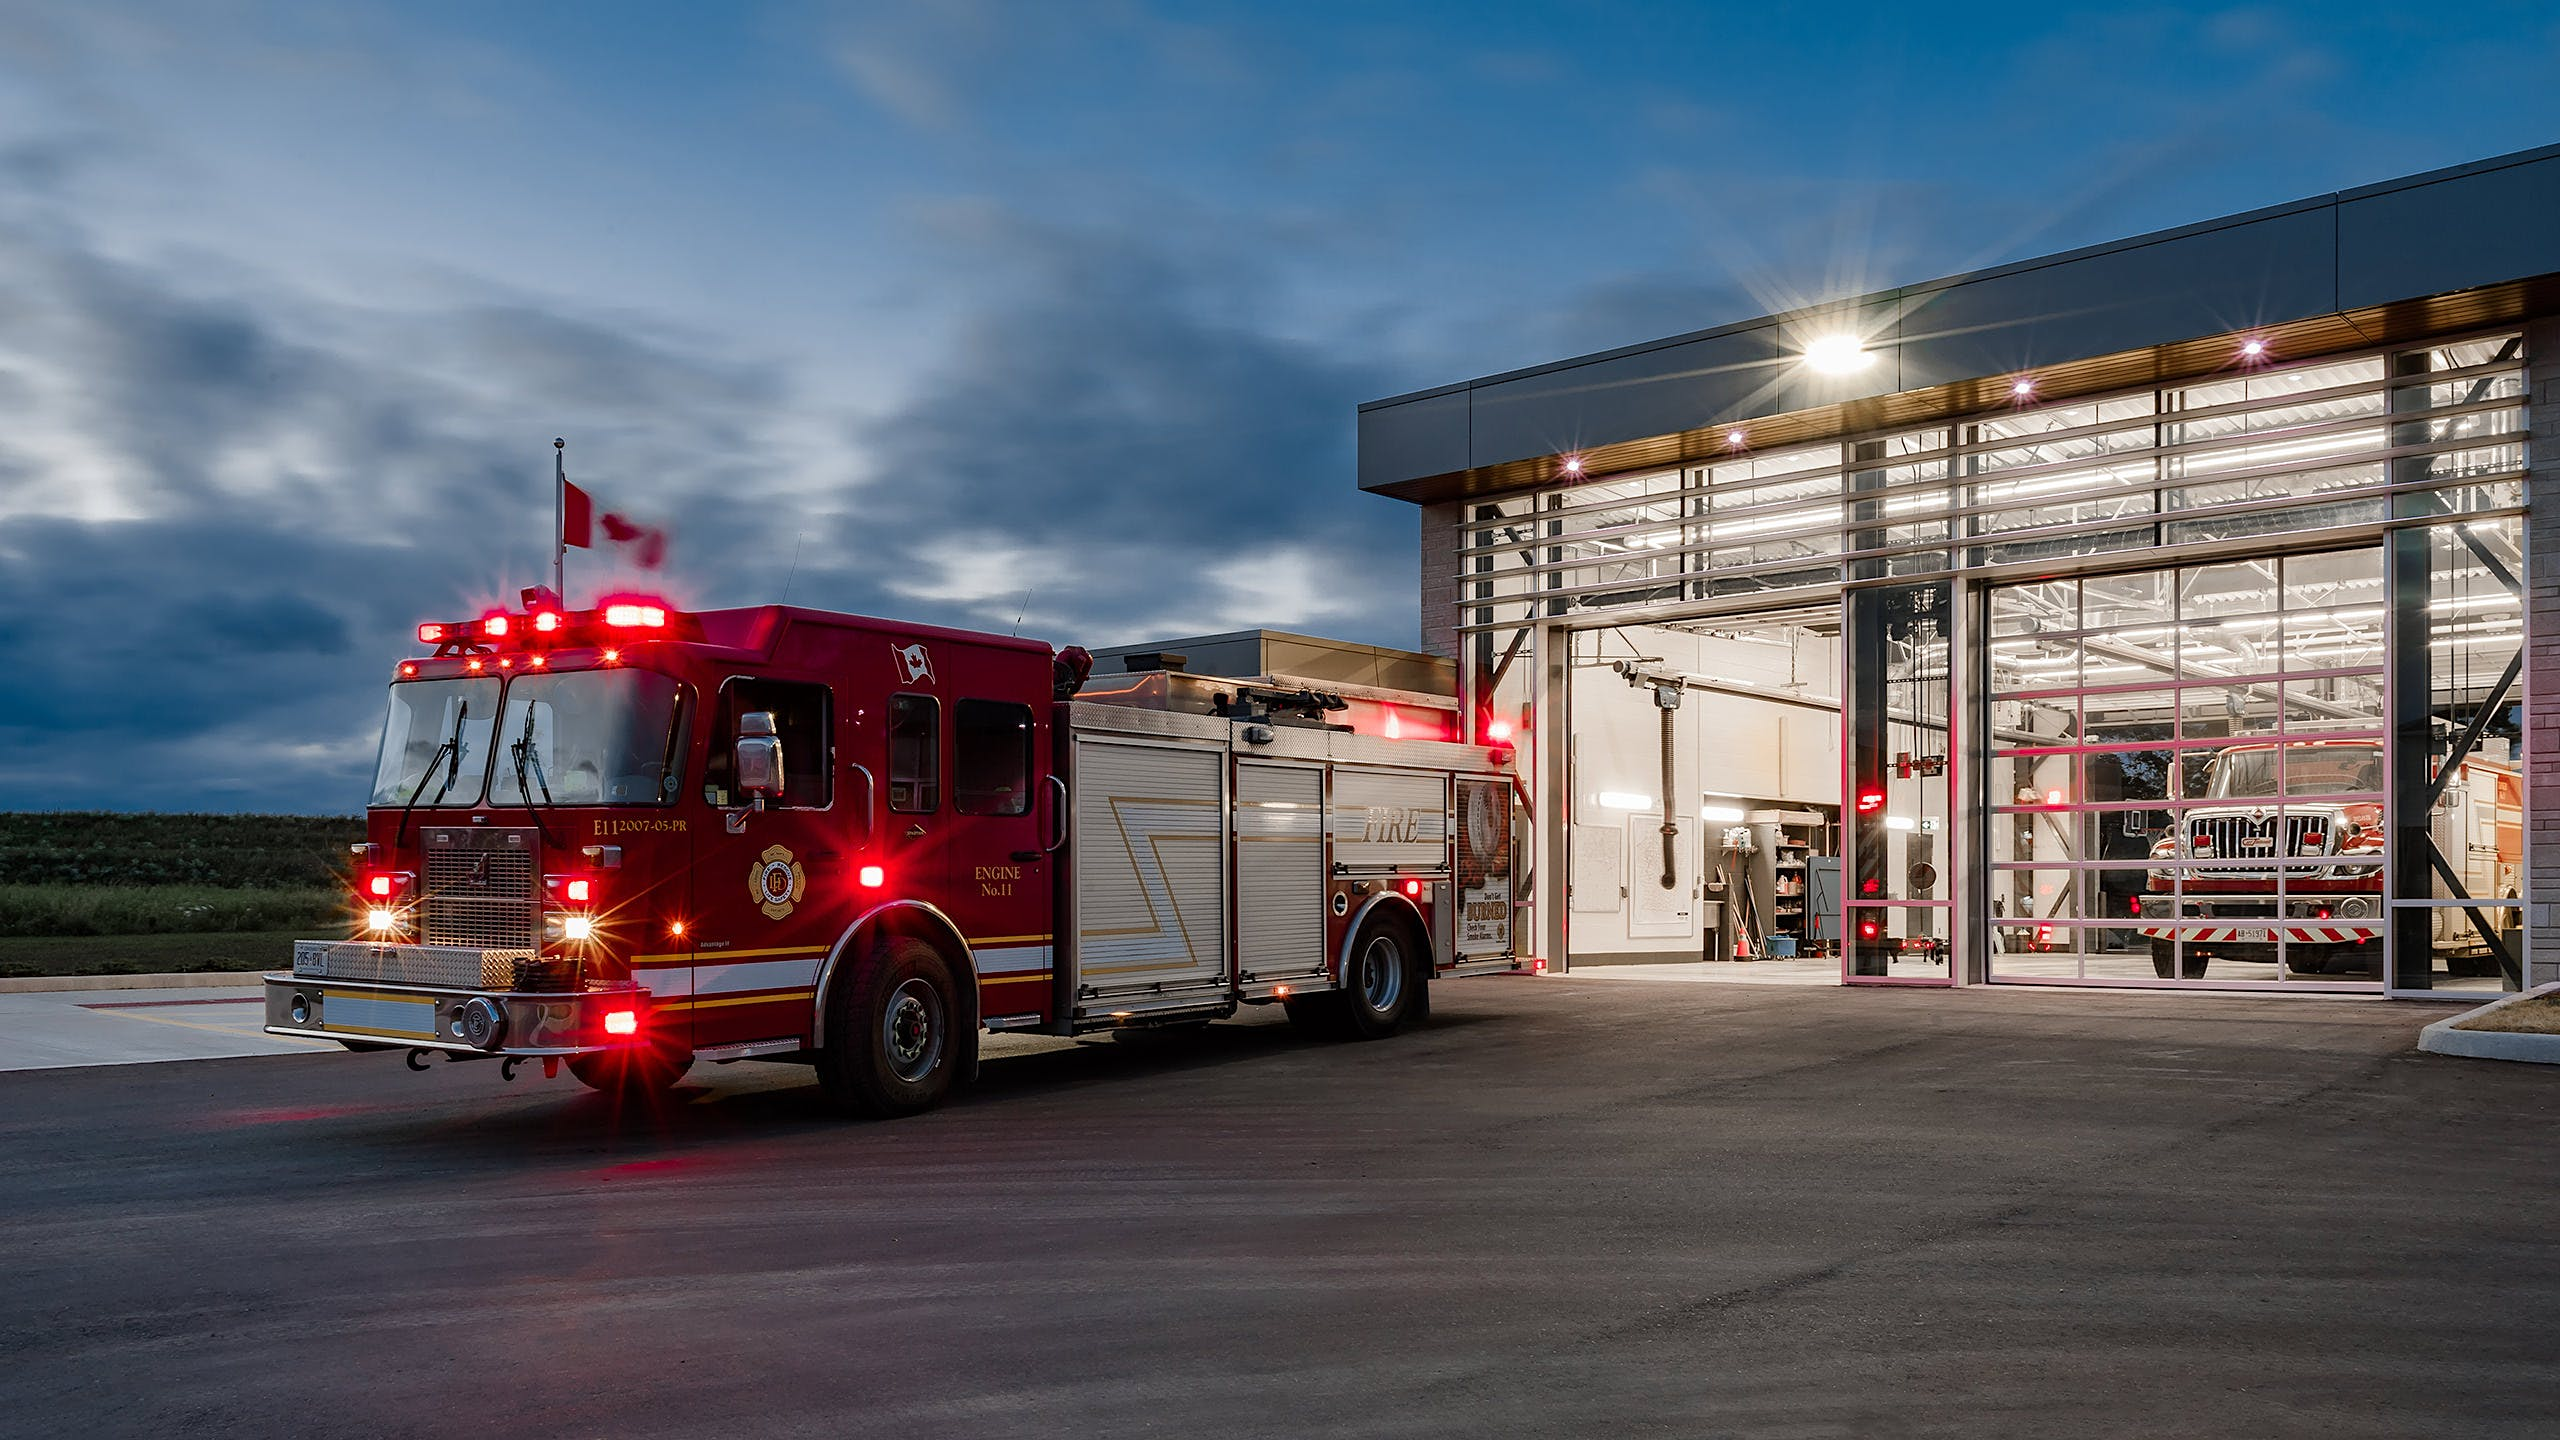 Architecture photo of the exterior of a fire station